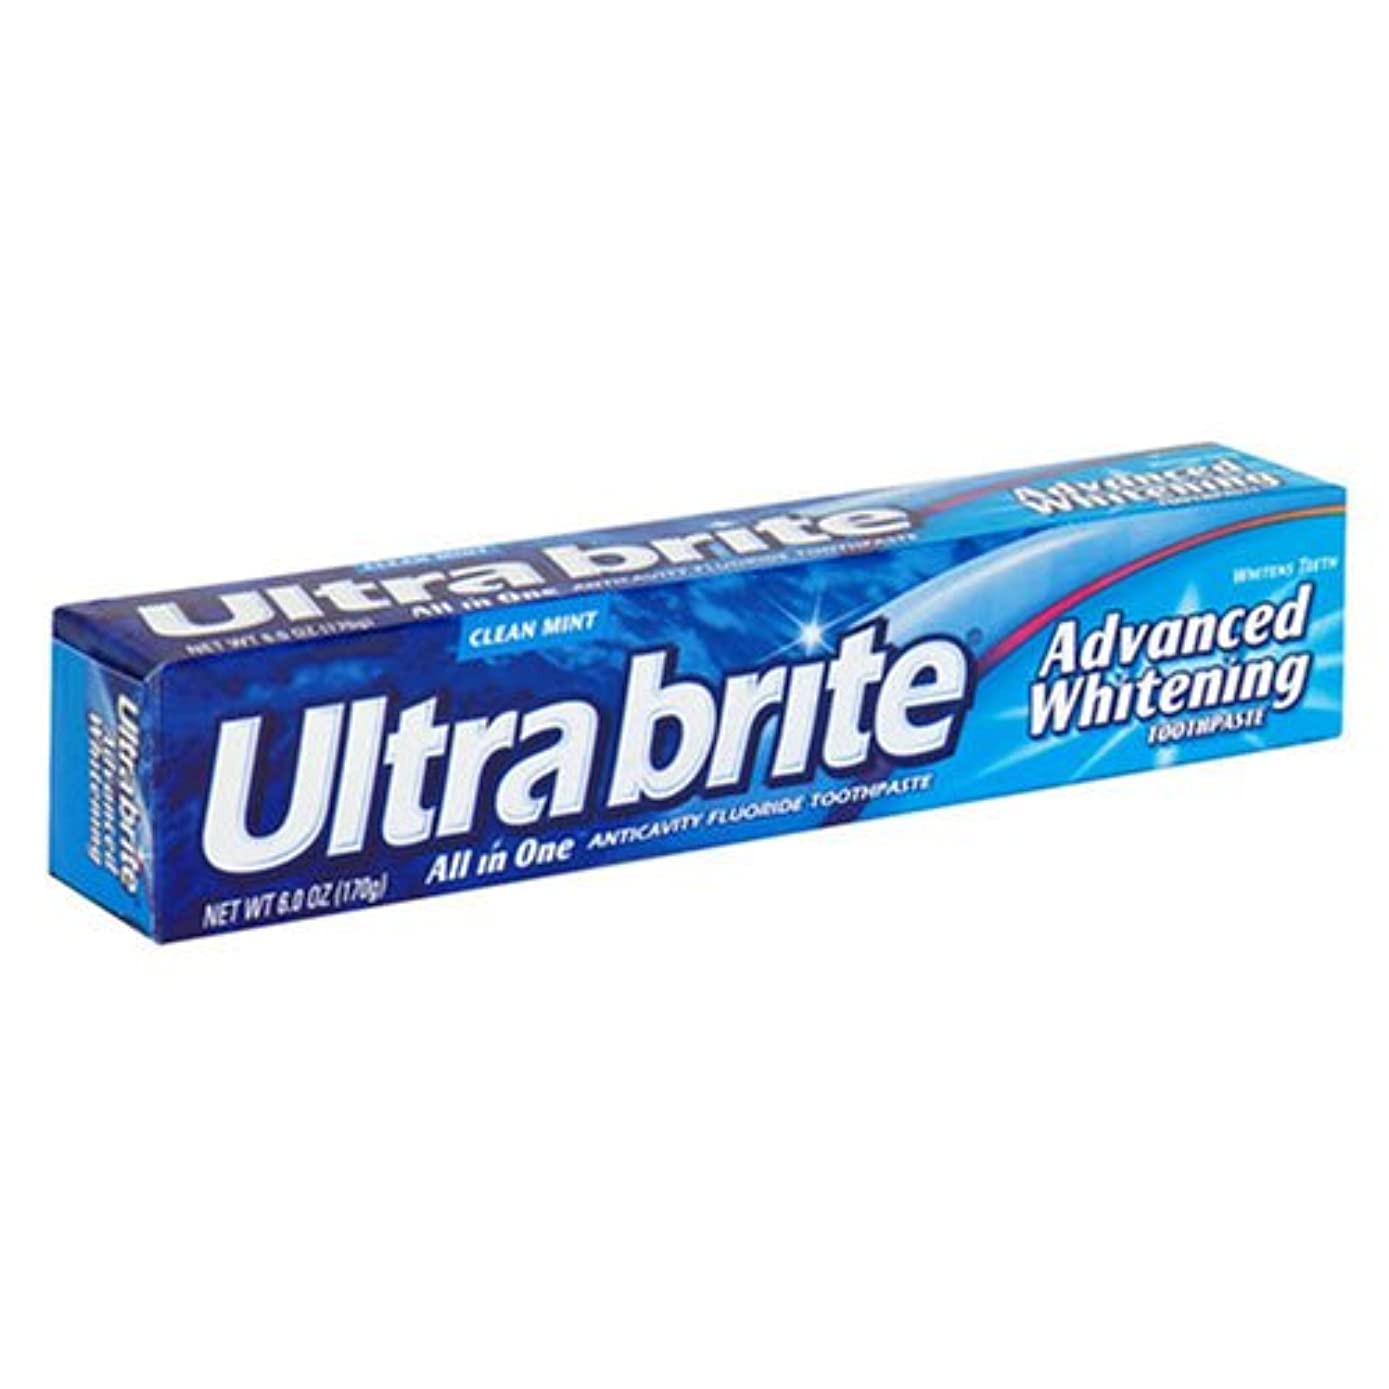 受動的切り下げコントローラ海外直送肘 Colgate Ultra Brite Advanced Whitening Fluoride Toothpaste, 6 oz